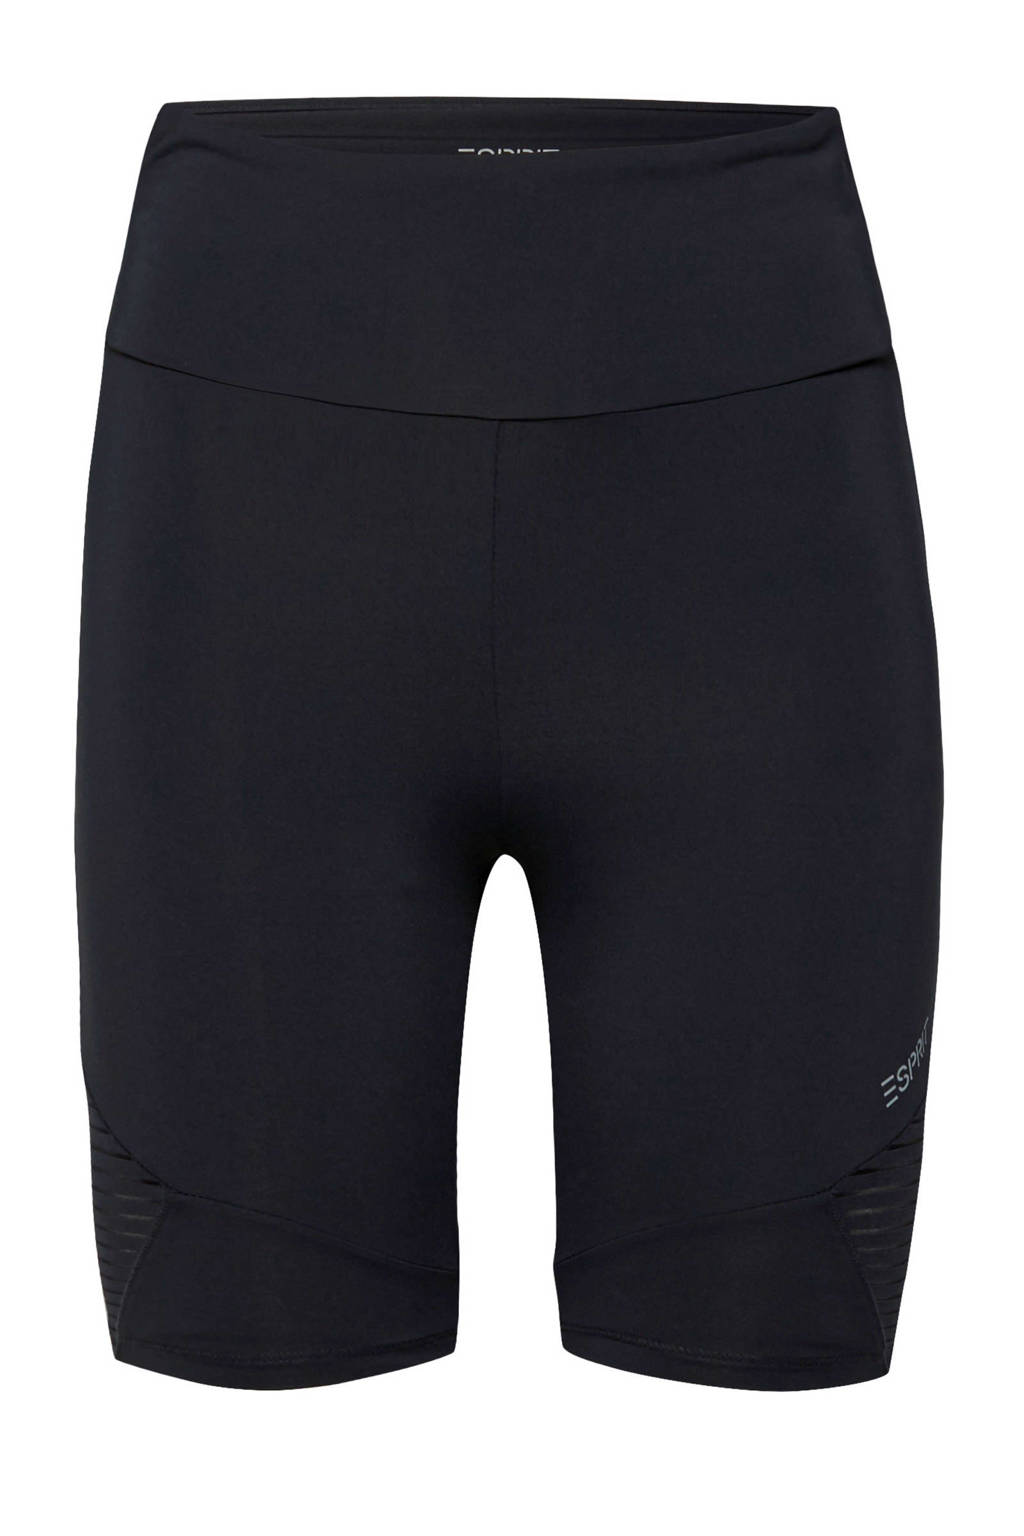 ESPRIT Women Sports short zwart, Zwart